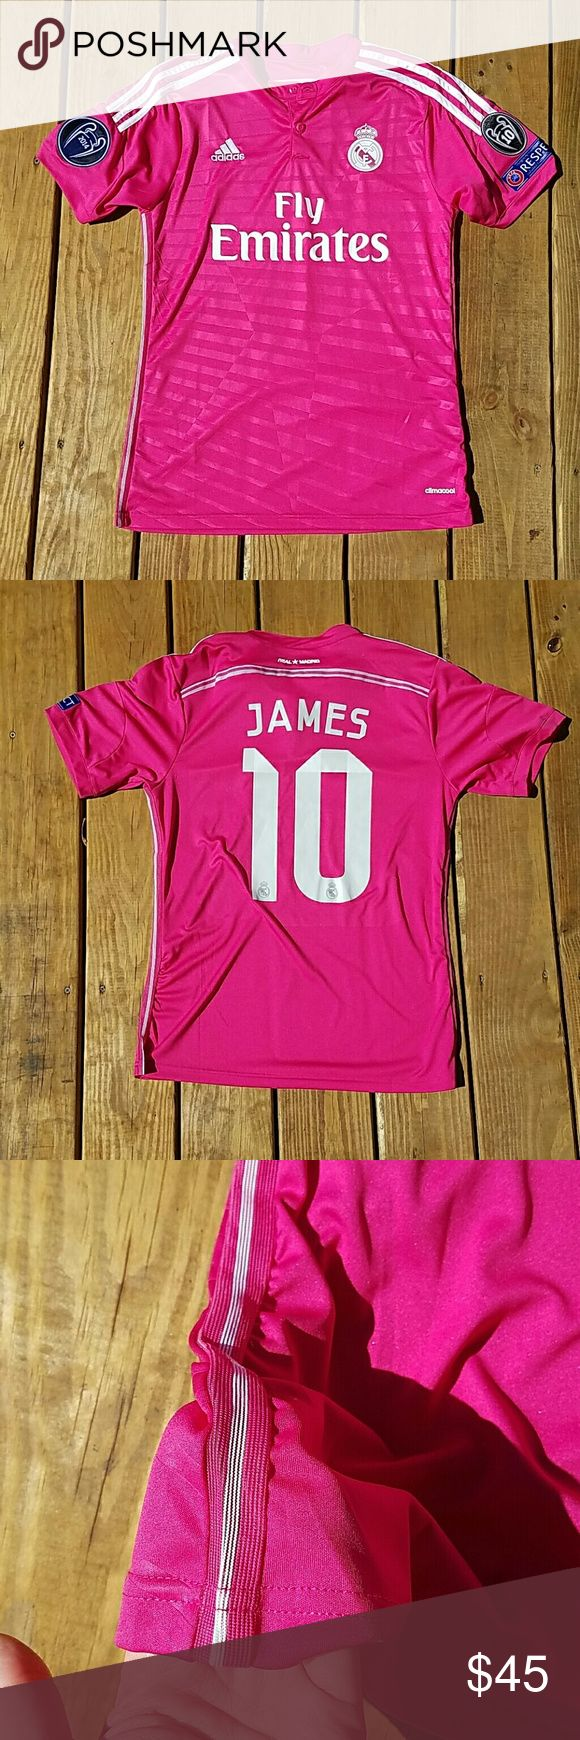 Fly Emirates Real Madrid James #10 jersey Hot pink Adidas Fly Emirates James jersey number 10. NWOT!! Real Madrid Adidas Tops Tees - Short Sleeve